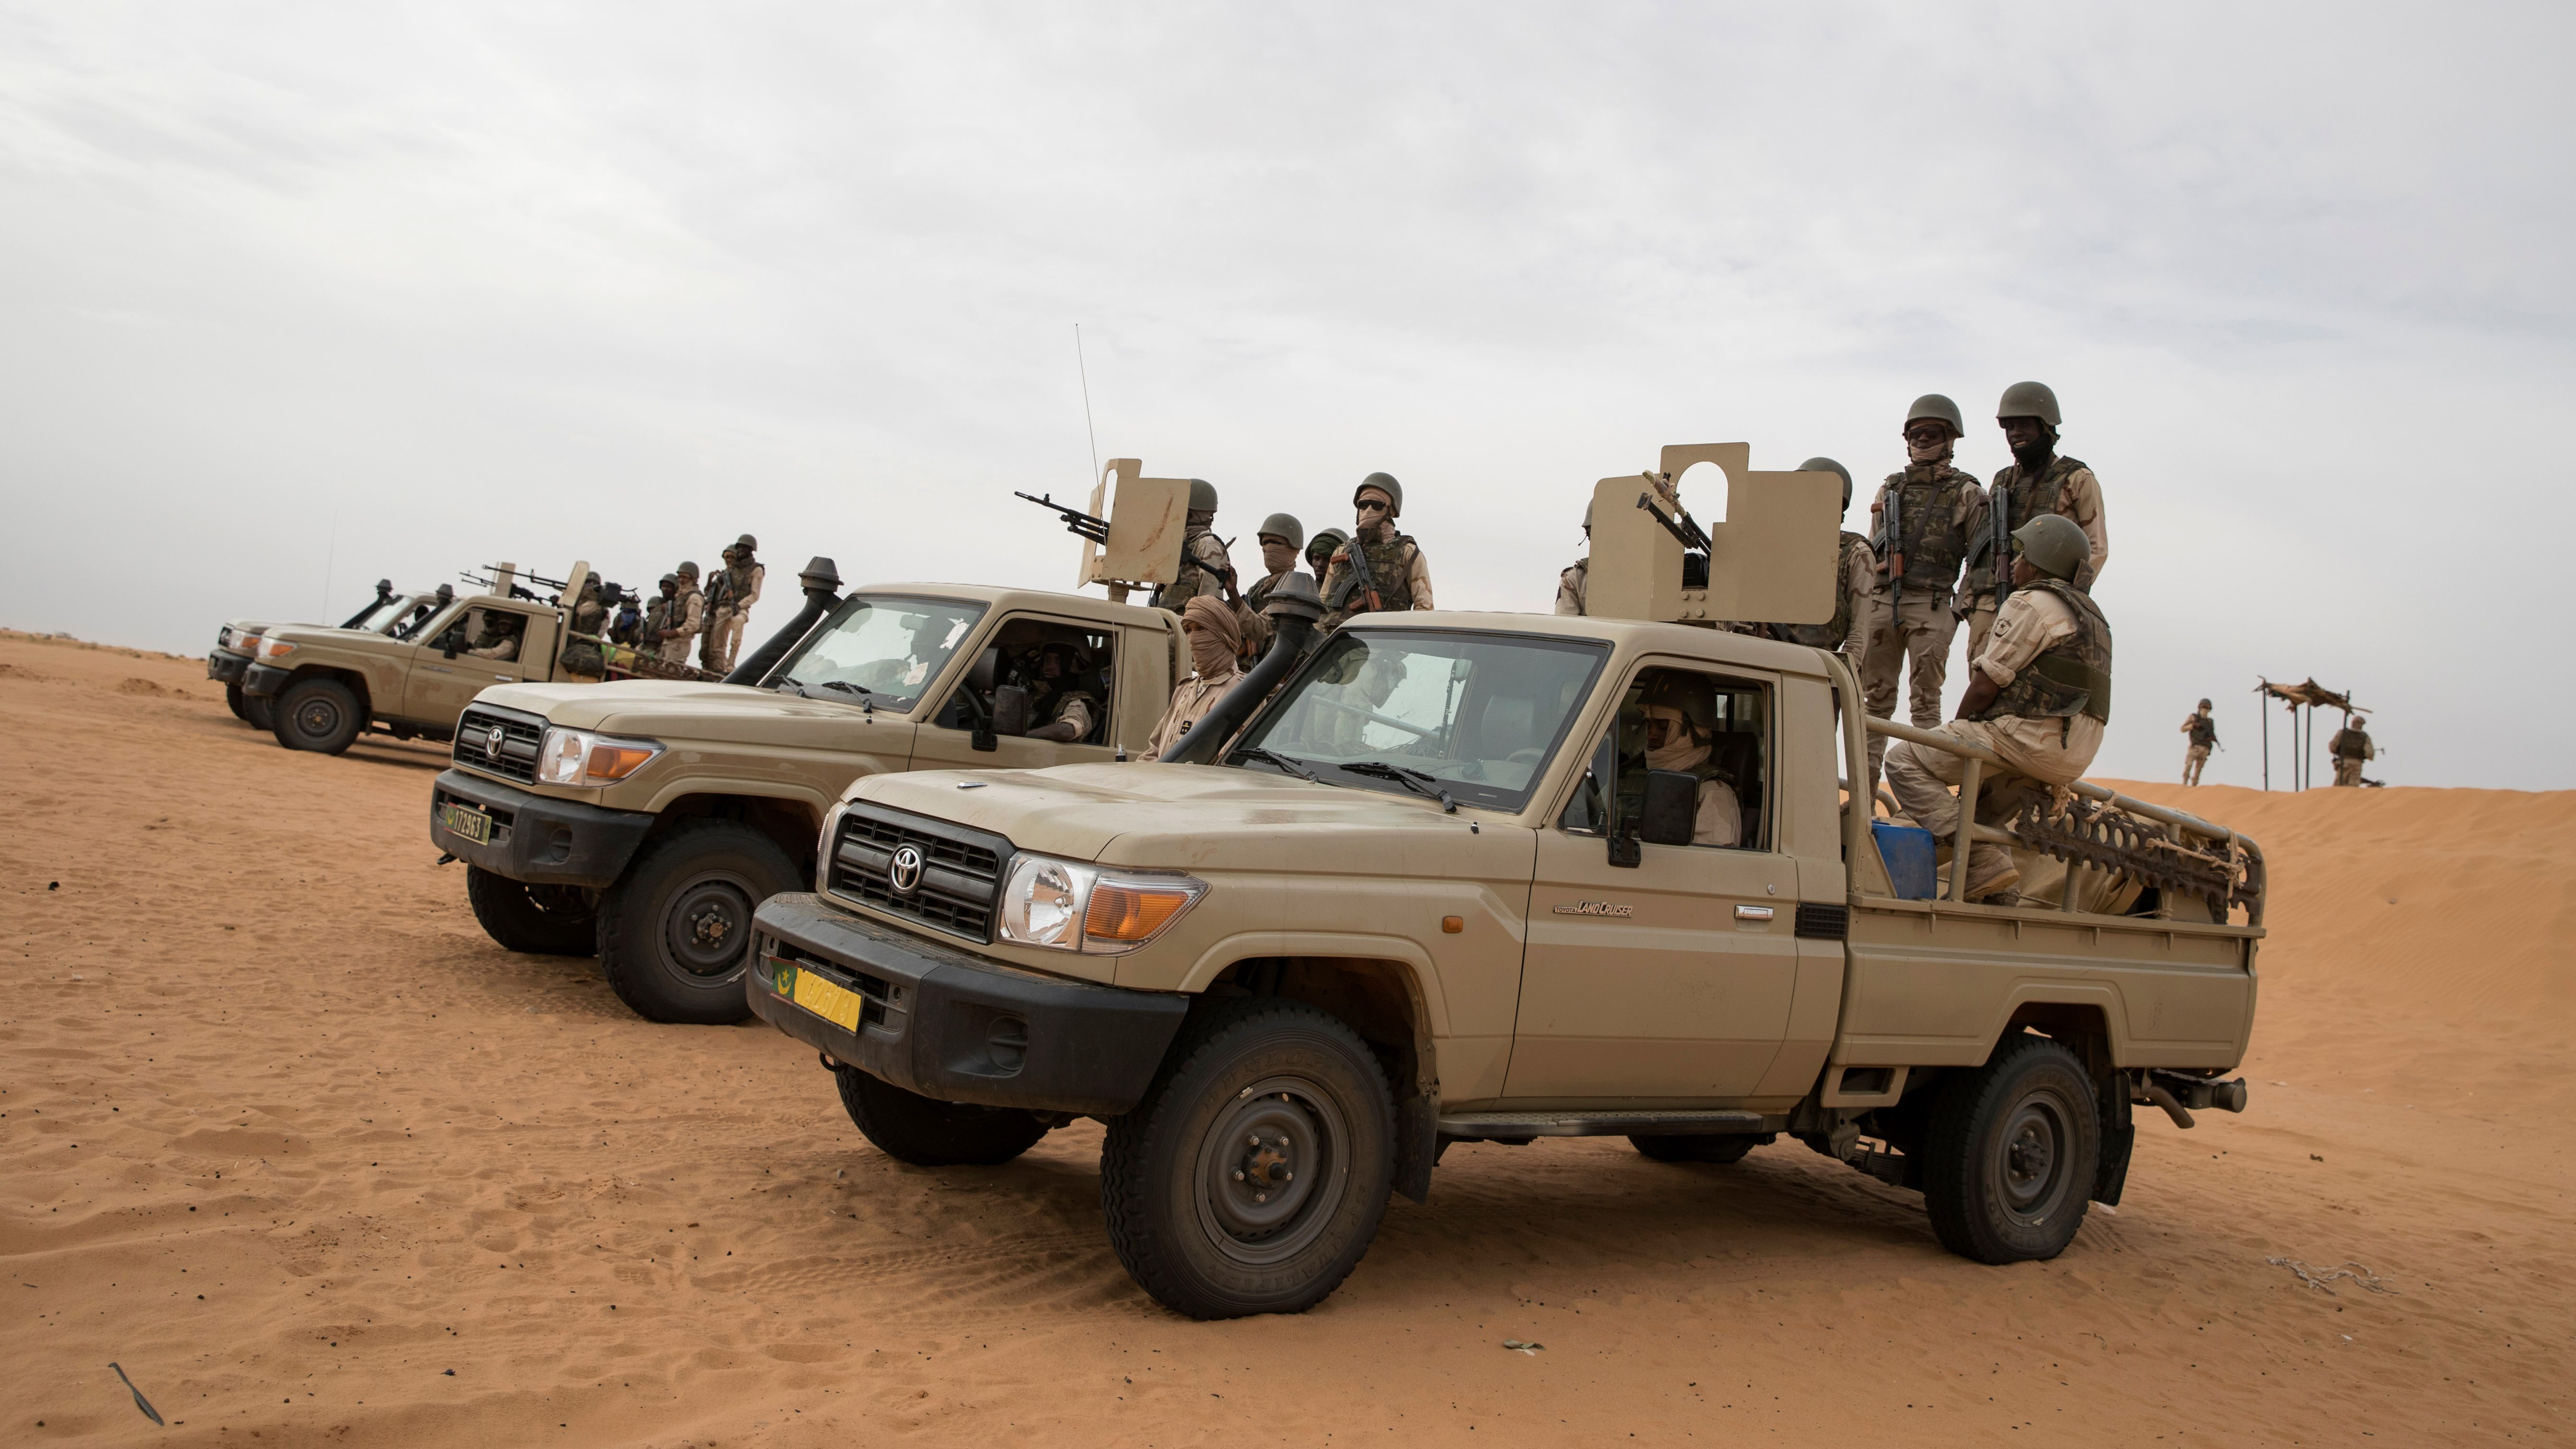 Soldiers of the Mauritania Army wait in armed vehicles at a G5 Sahel task force outpost in the southeast of Mauritania, along the border with Mali, on November 22, 2018. (THOMAS SAMSON/AFP/Getty Images)